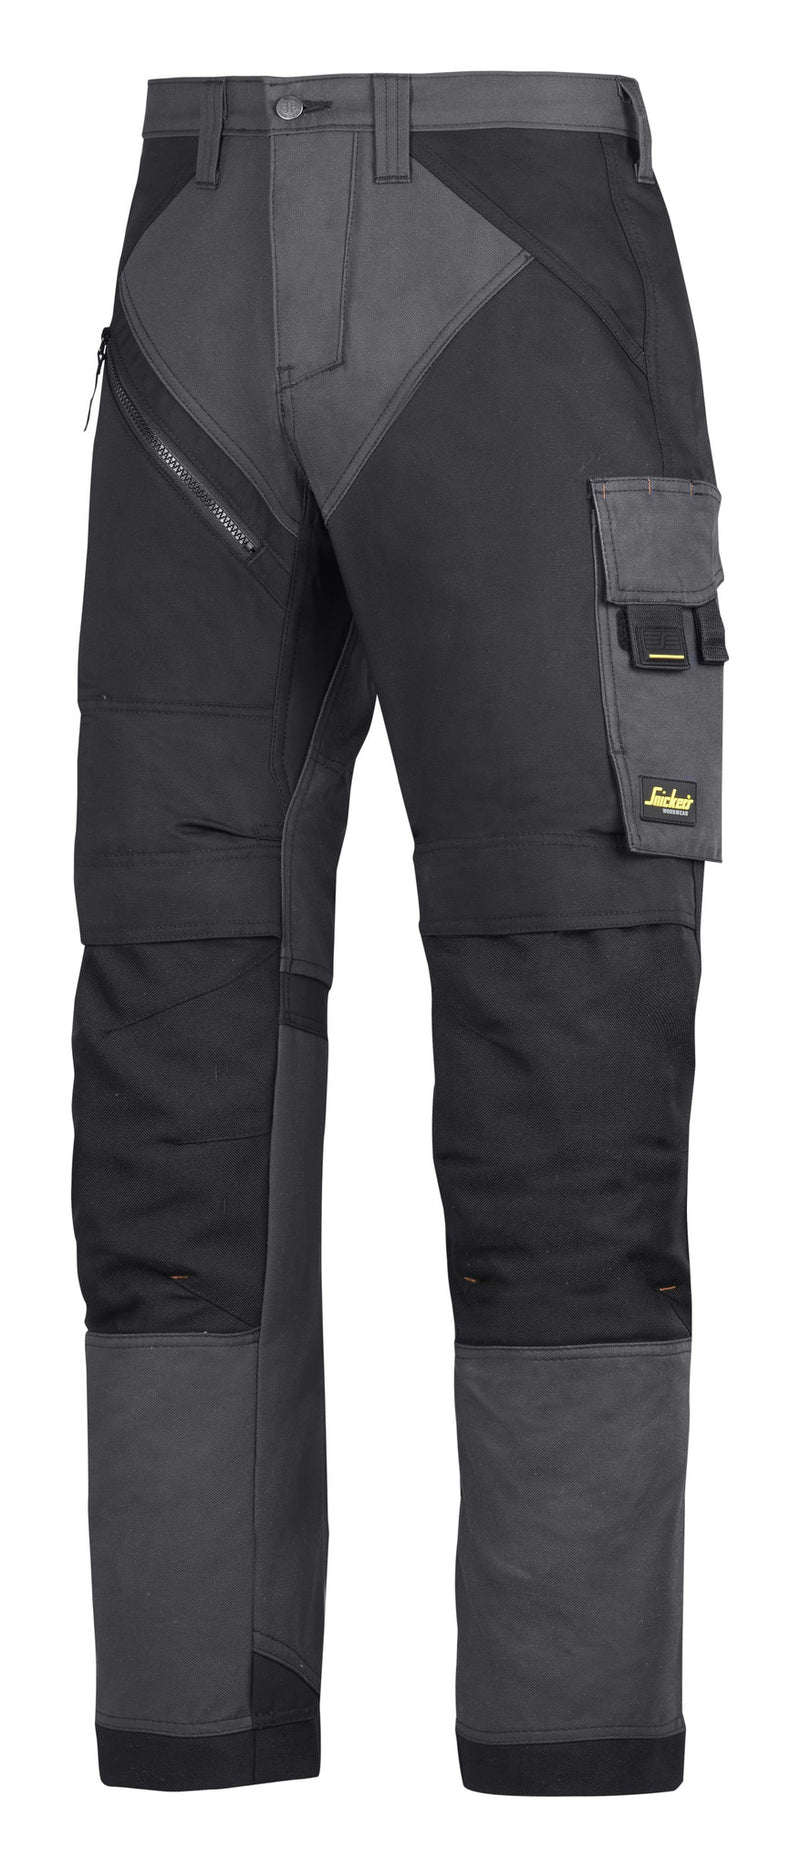 Snickers 6303 RuffWork werkbroek Steel Grey - NEW - - Snickers Werkkledij